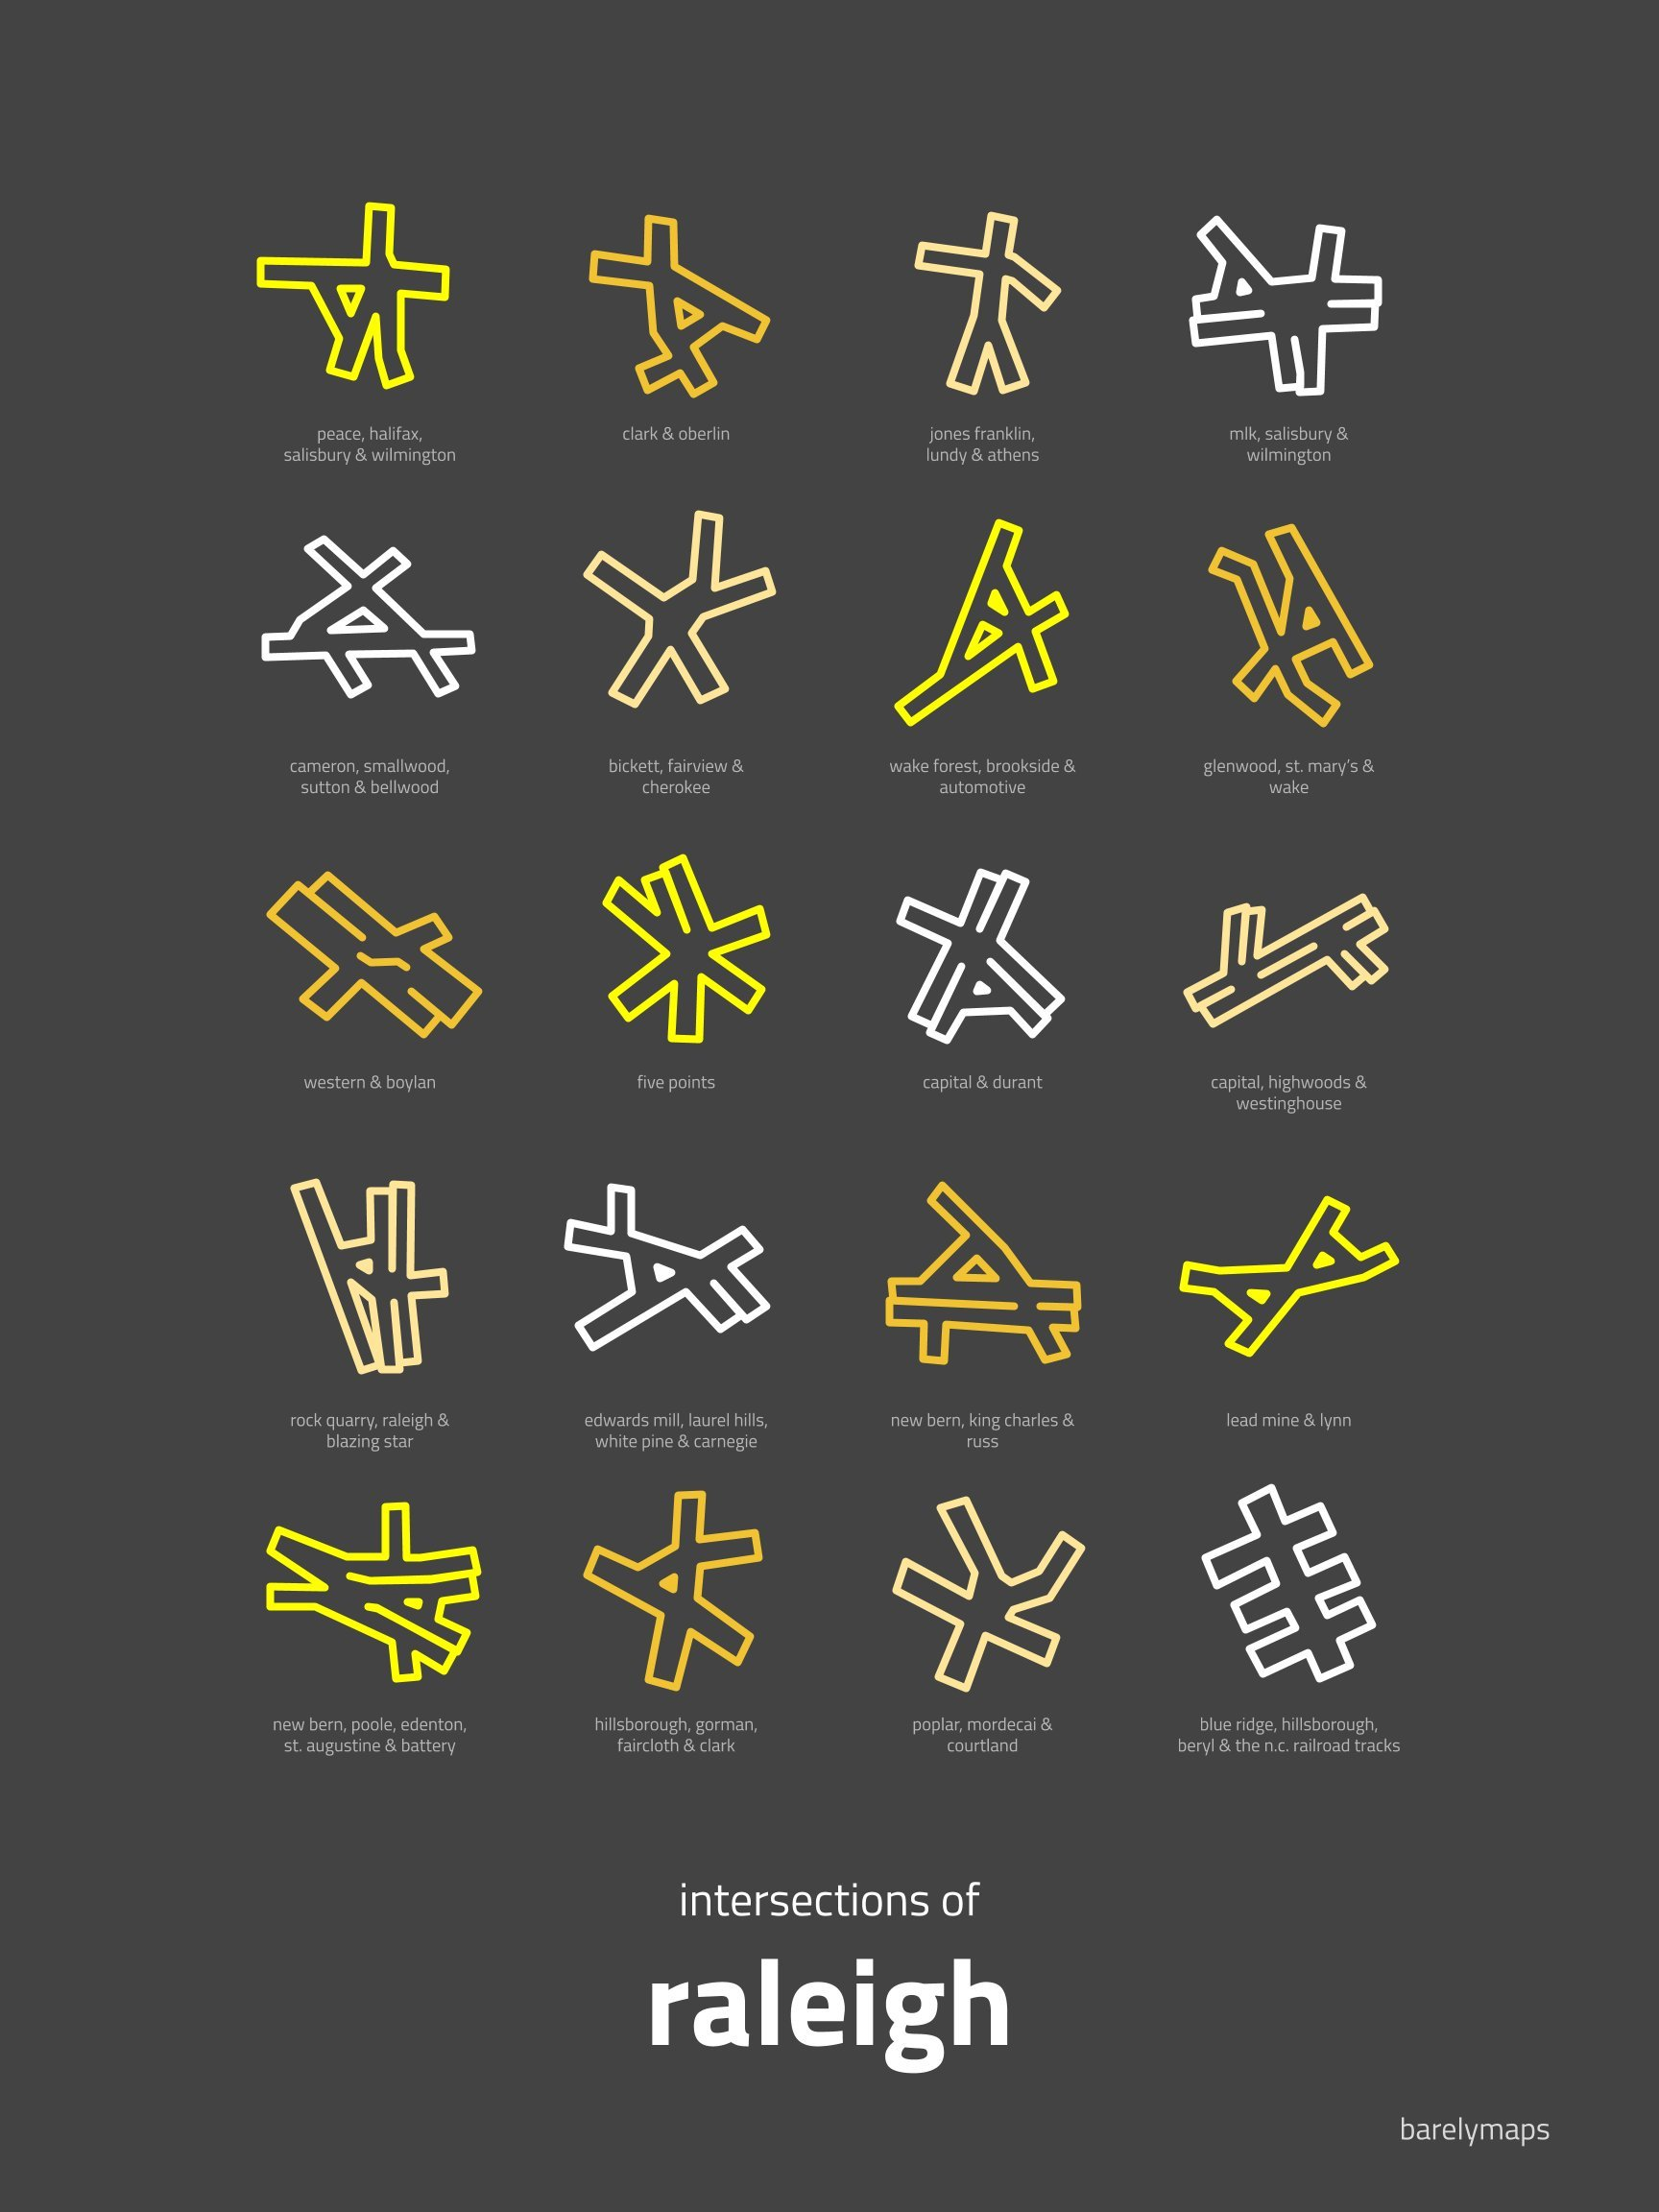 Raleigh intersections